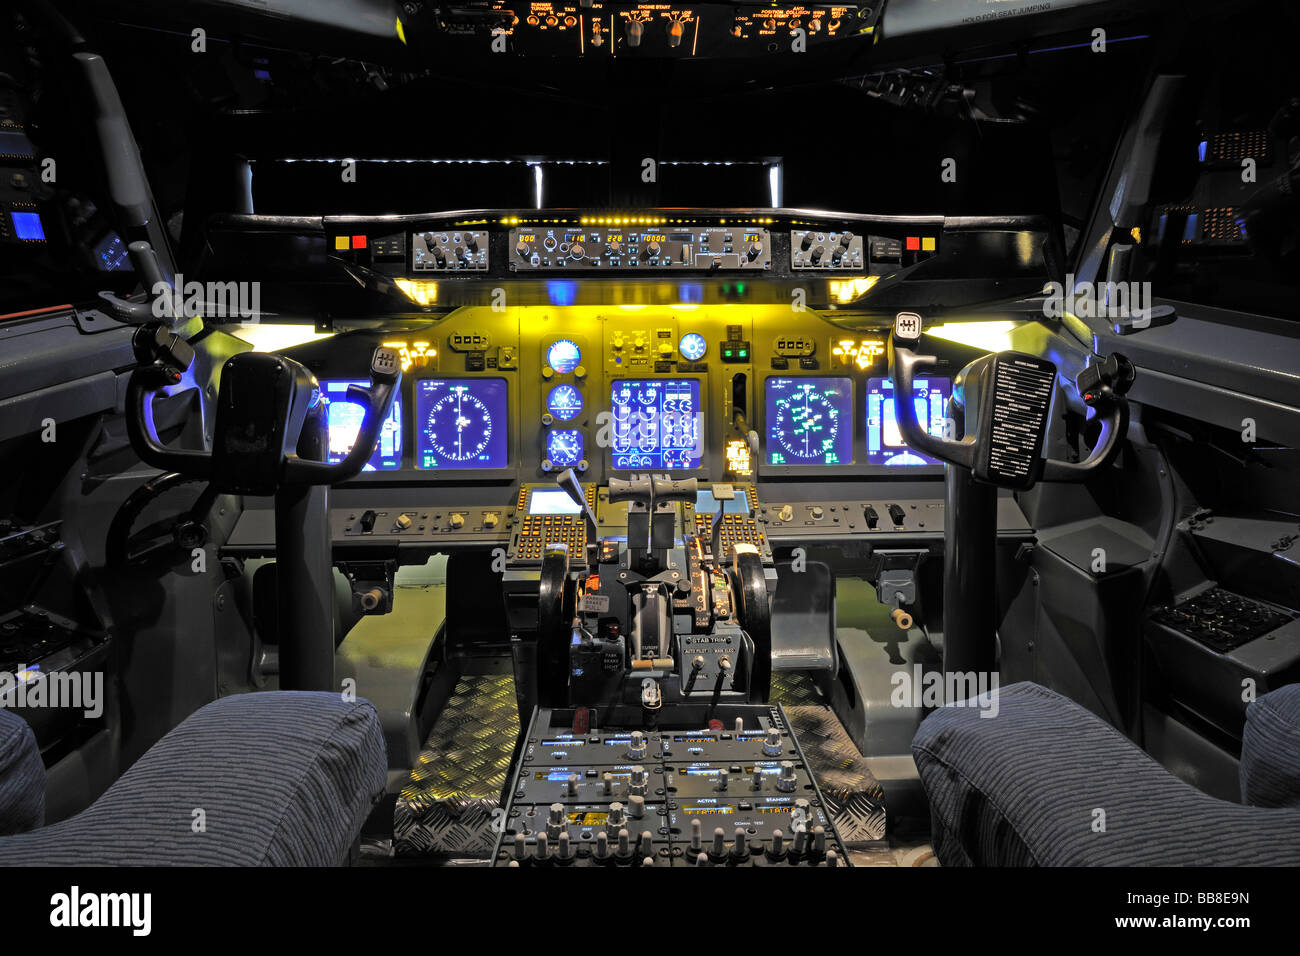 View Of The Cockpit Of A Boeing 737 700 In A Flight